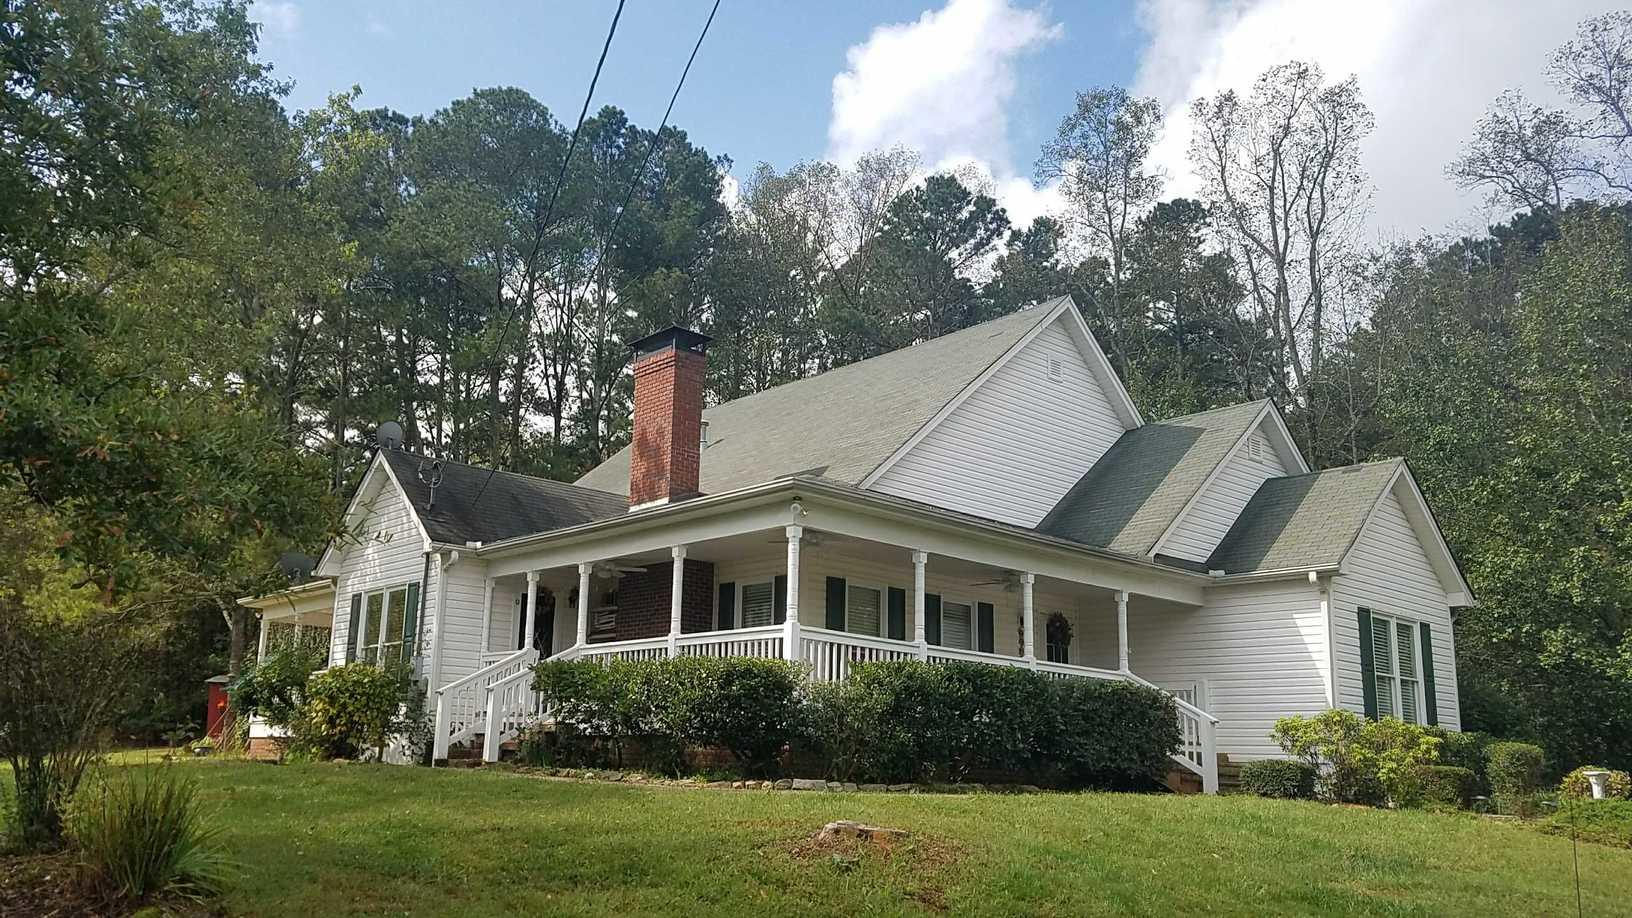 Dawsonvile, GA Professional Contractor Roof Install - Before Photo